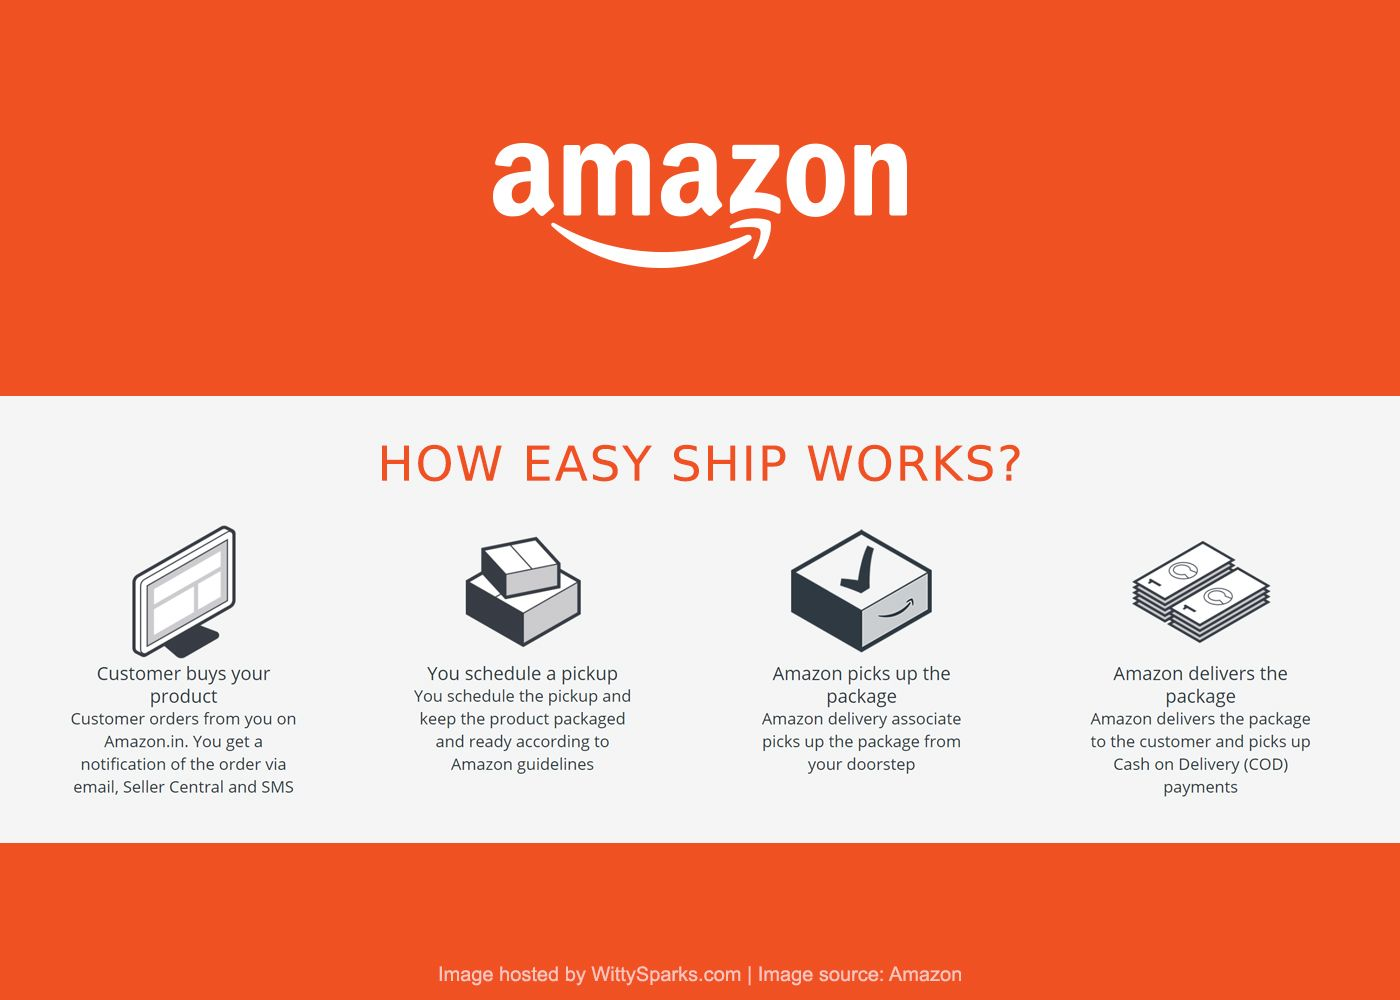 Amazon to assist customers with launches